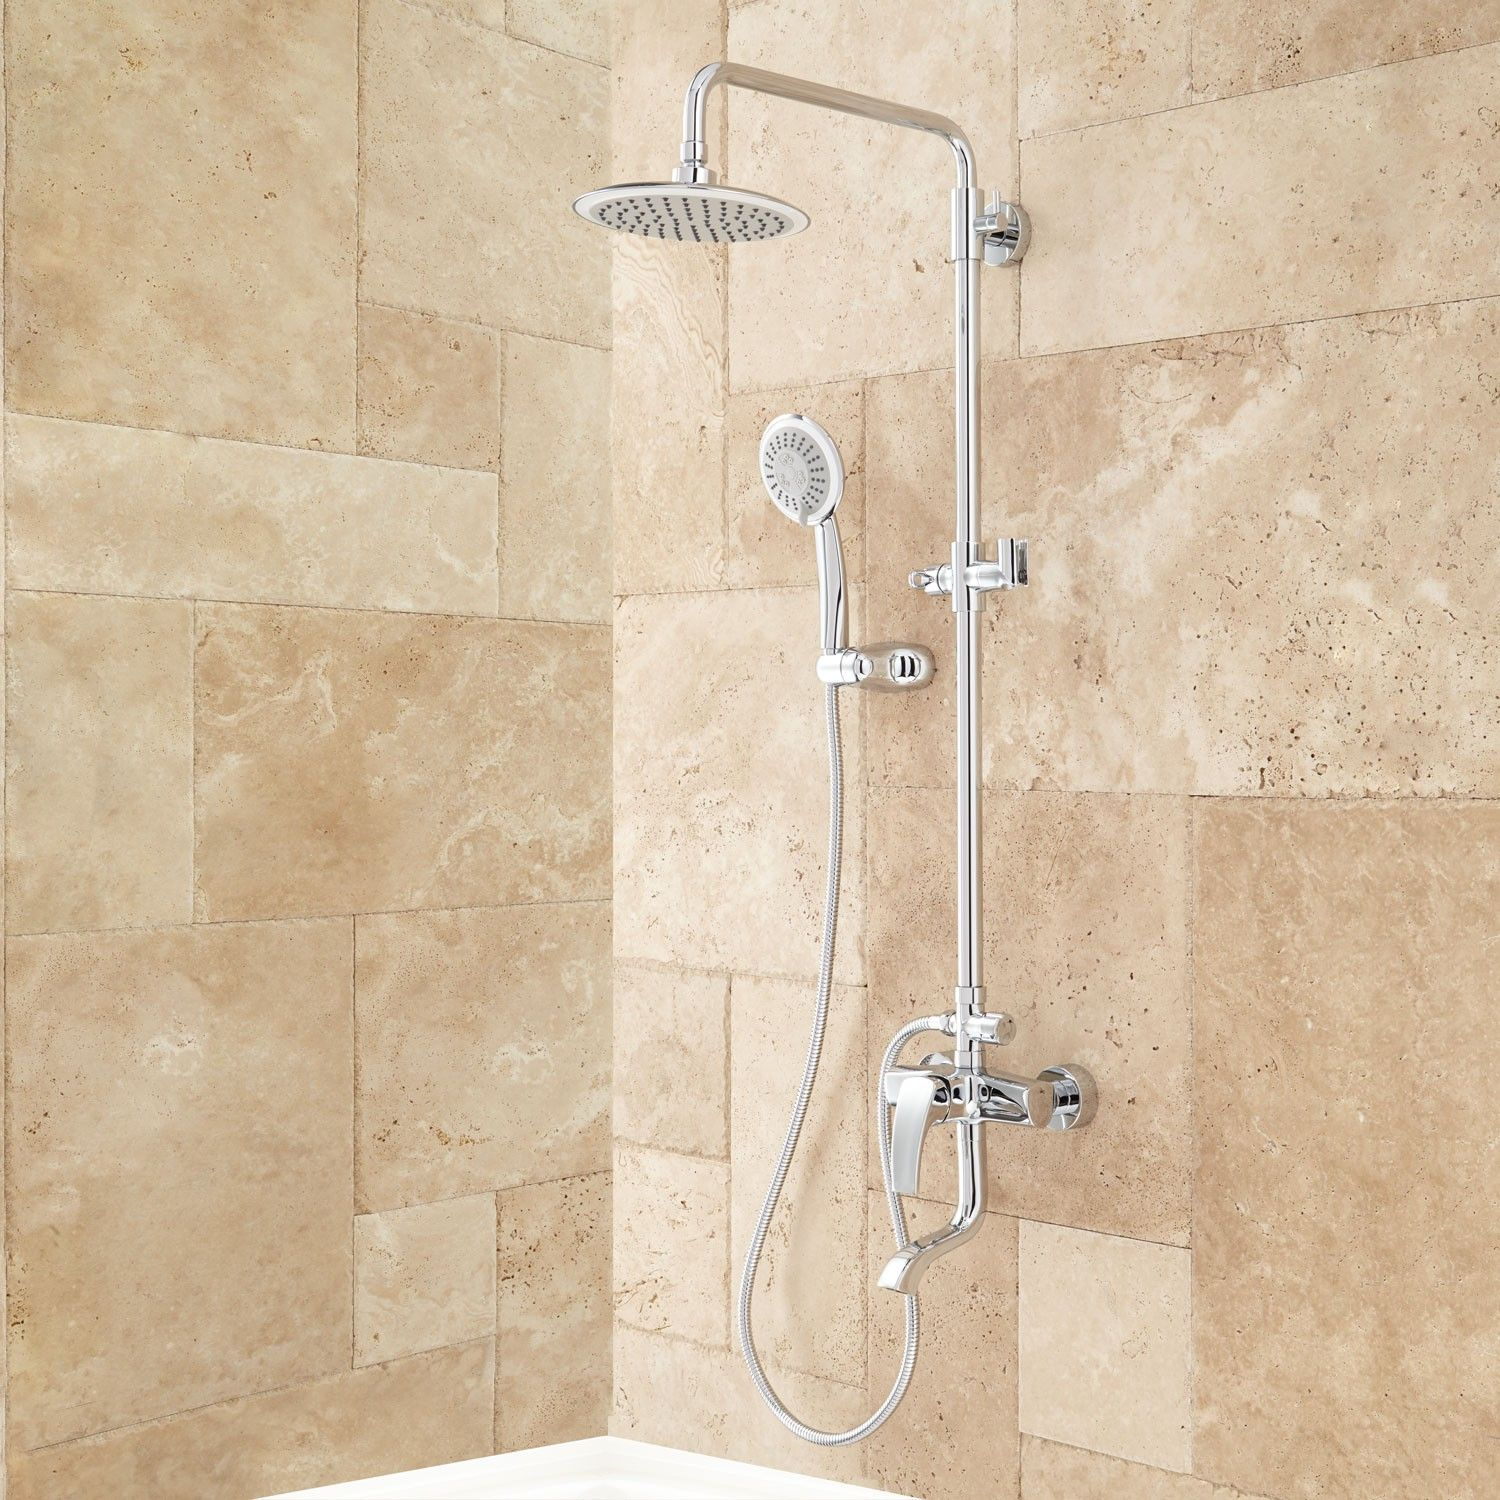 Regan Exposed Pipe Tub and Shower Set with Hand Shower | Shower set ...